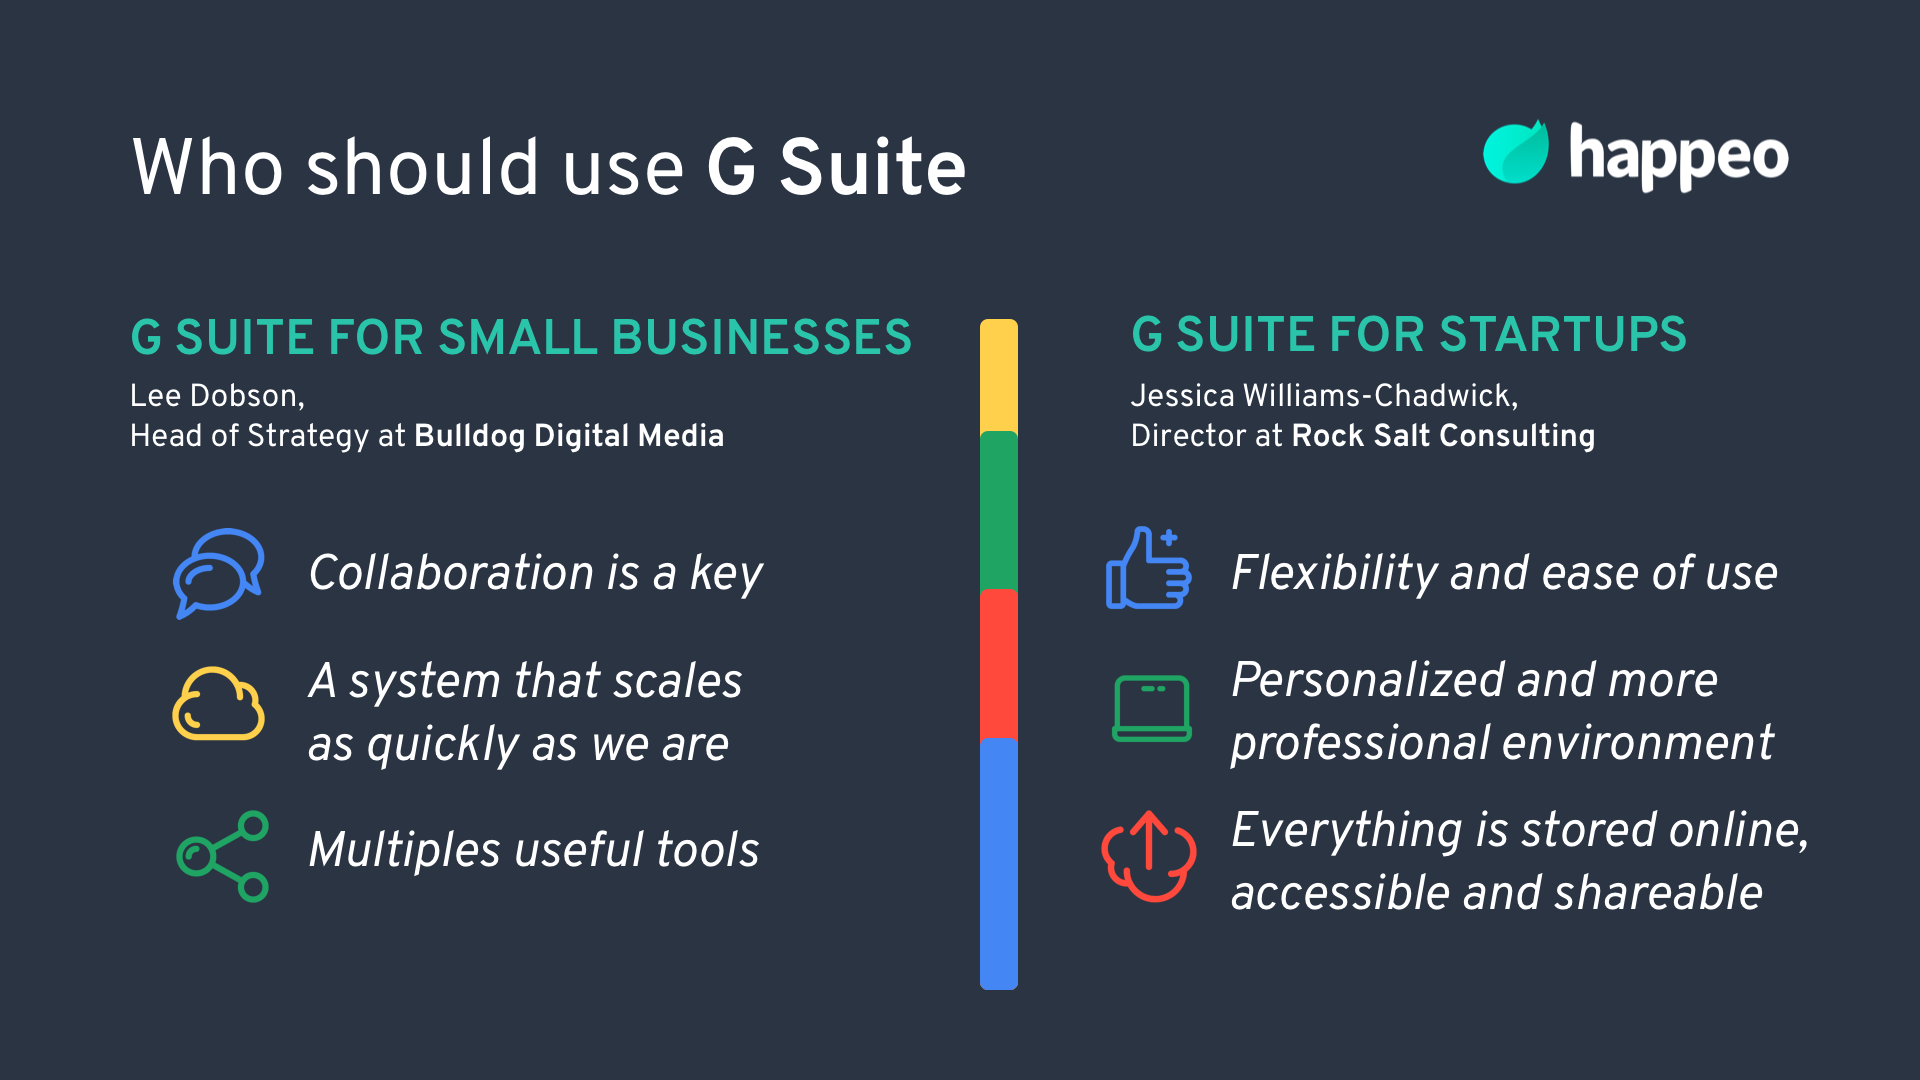 G Suite for small businesses and startups